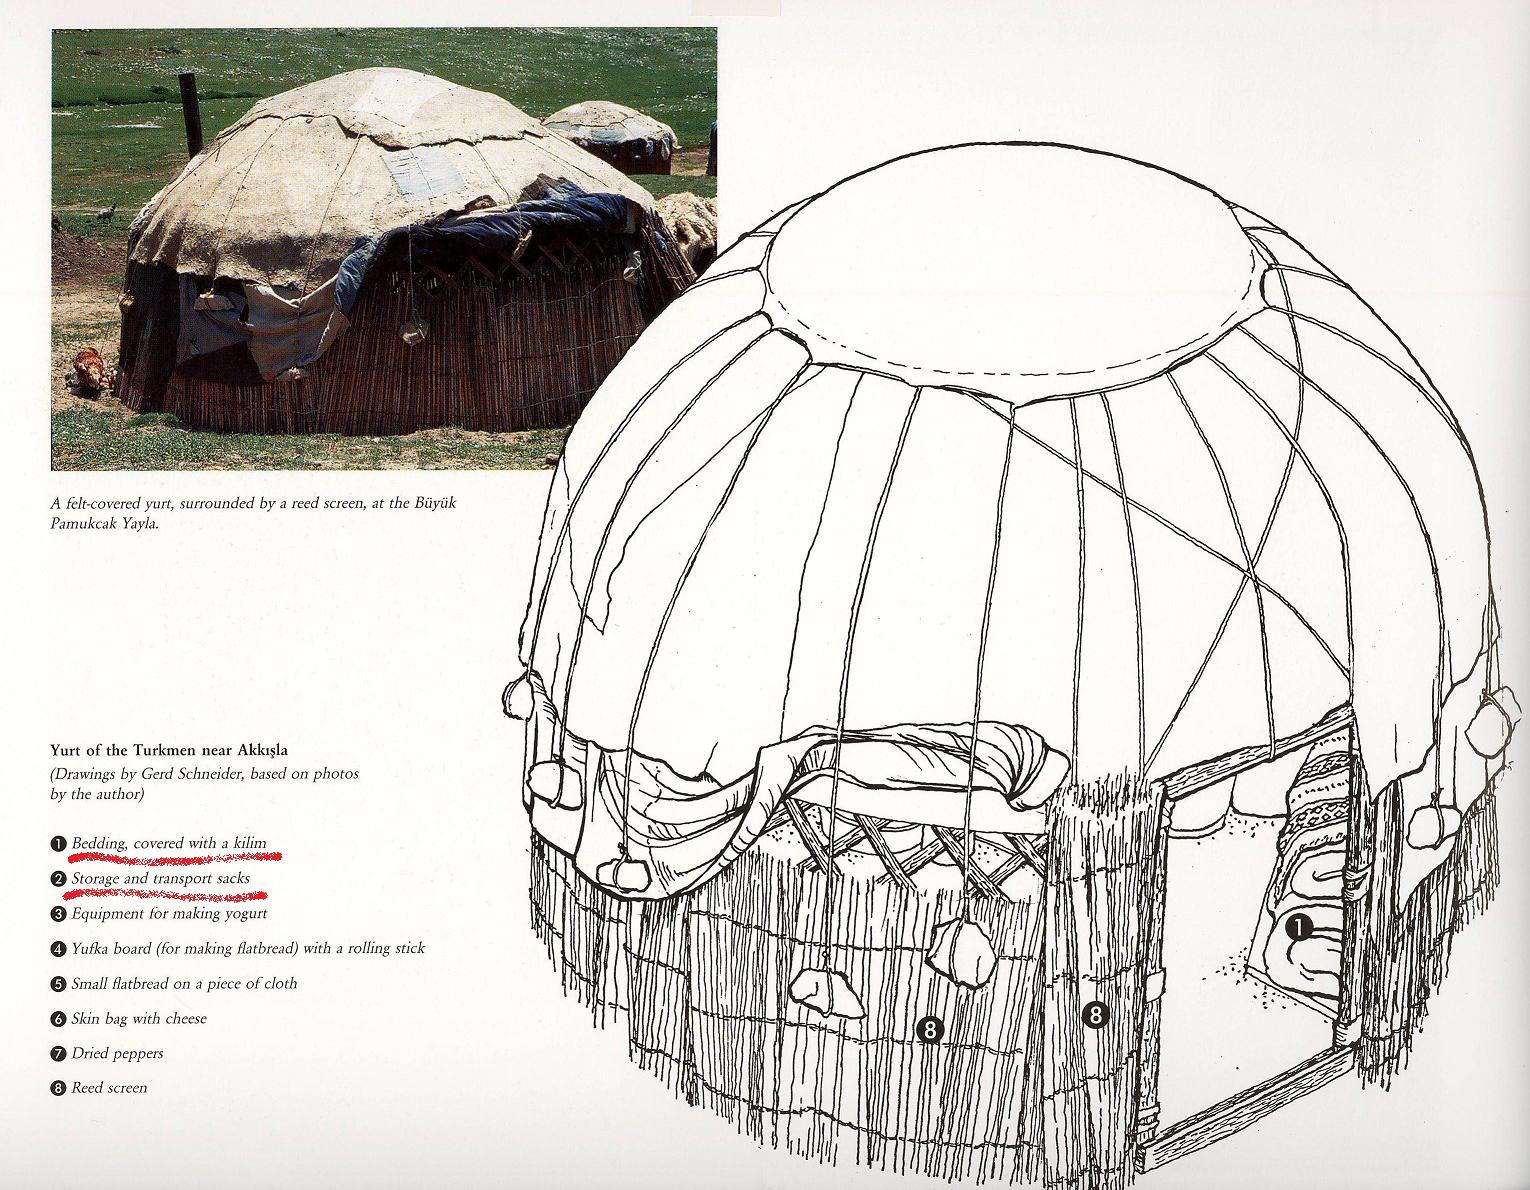 Anatolian Turkmen round felt tent drawing, from the book Nomads in Anatolia by Harald Böhmer